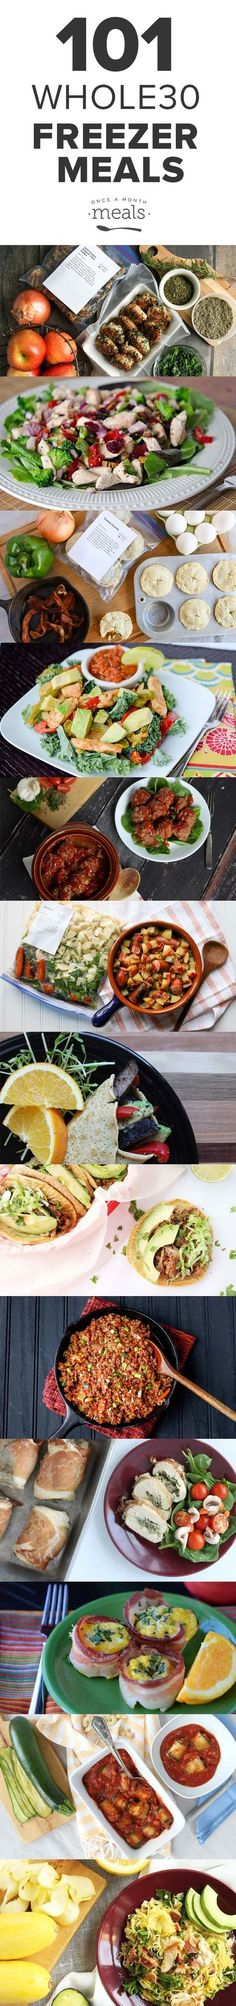 Don't get caught wondering what to eat! We have 101 recipes in a wide variety of flavors that can be cooked and frozen ahead of time so you finish your Whole30. via @onceamonthmeals